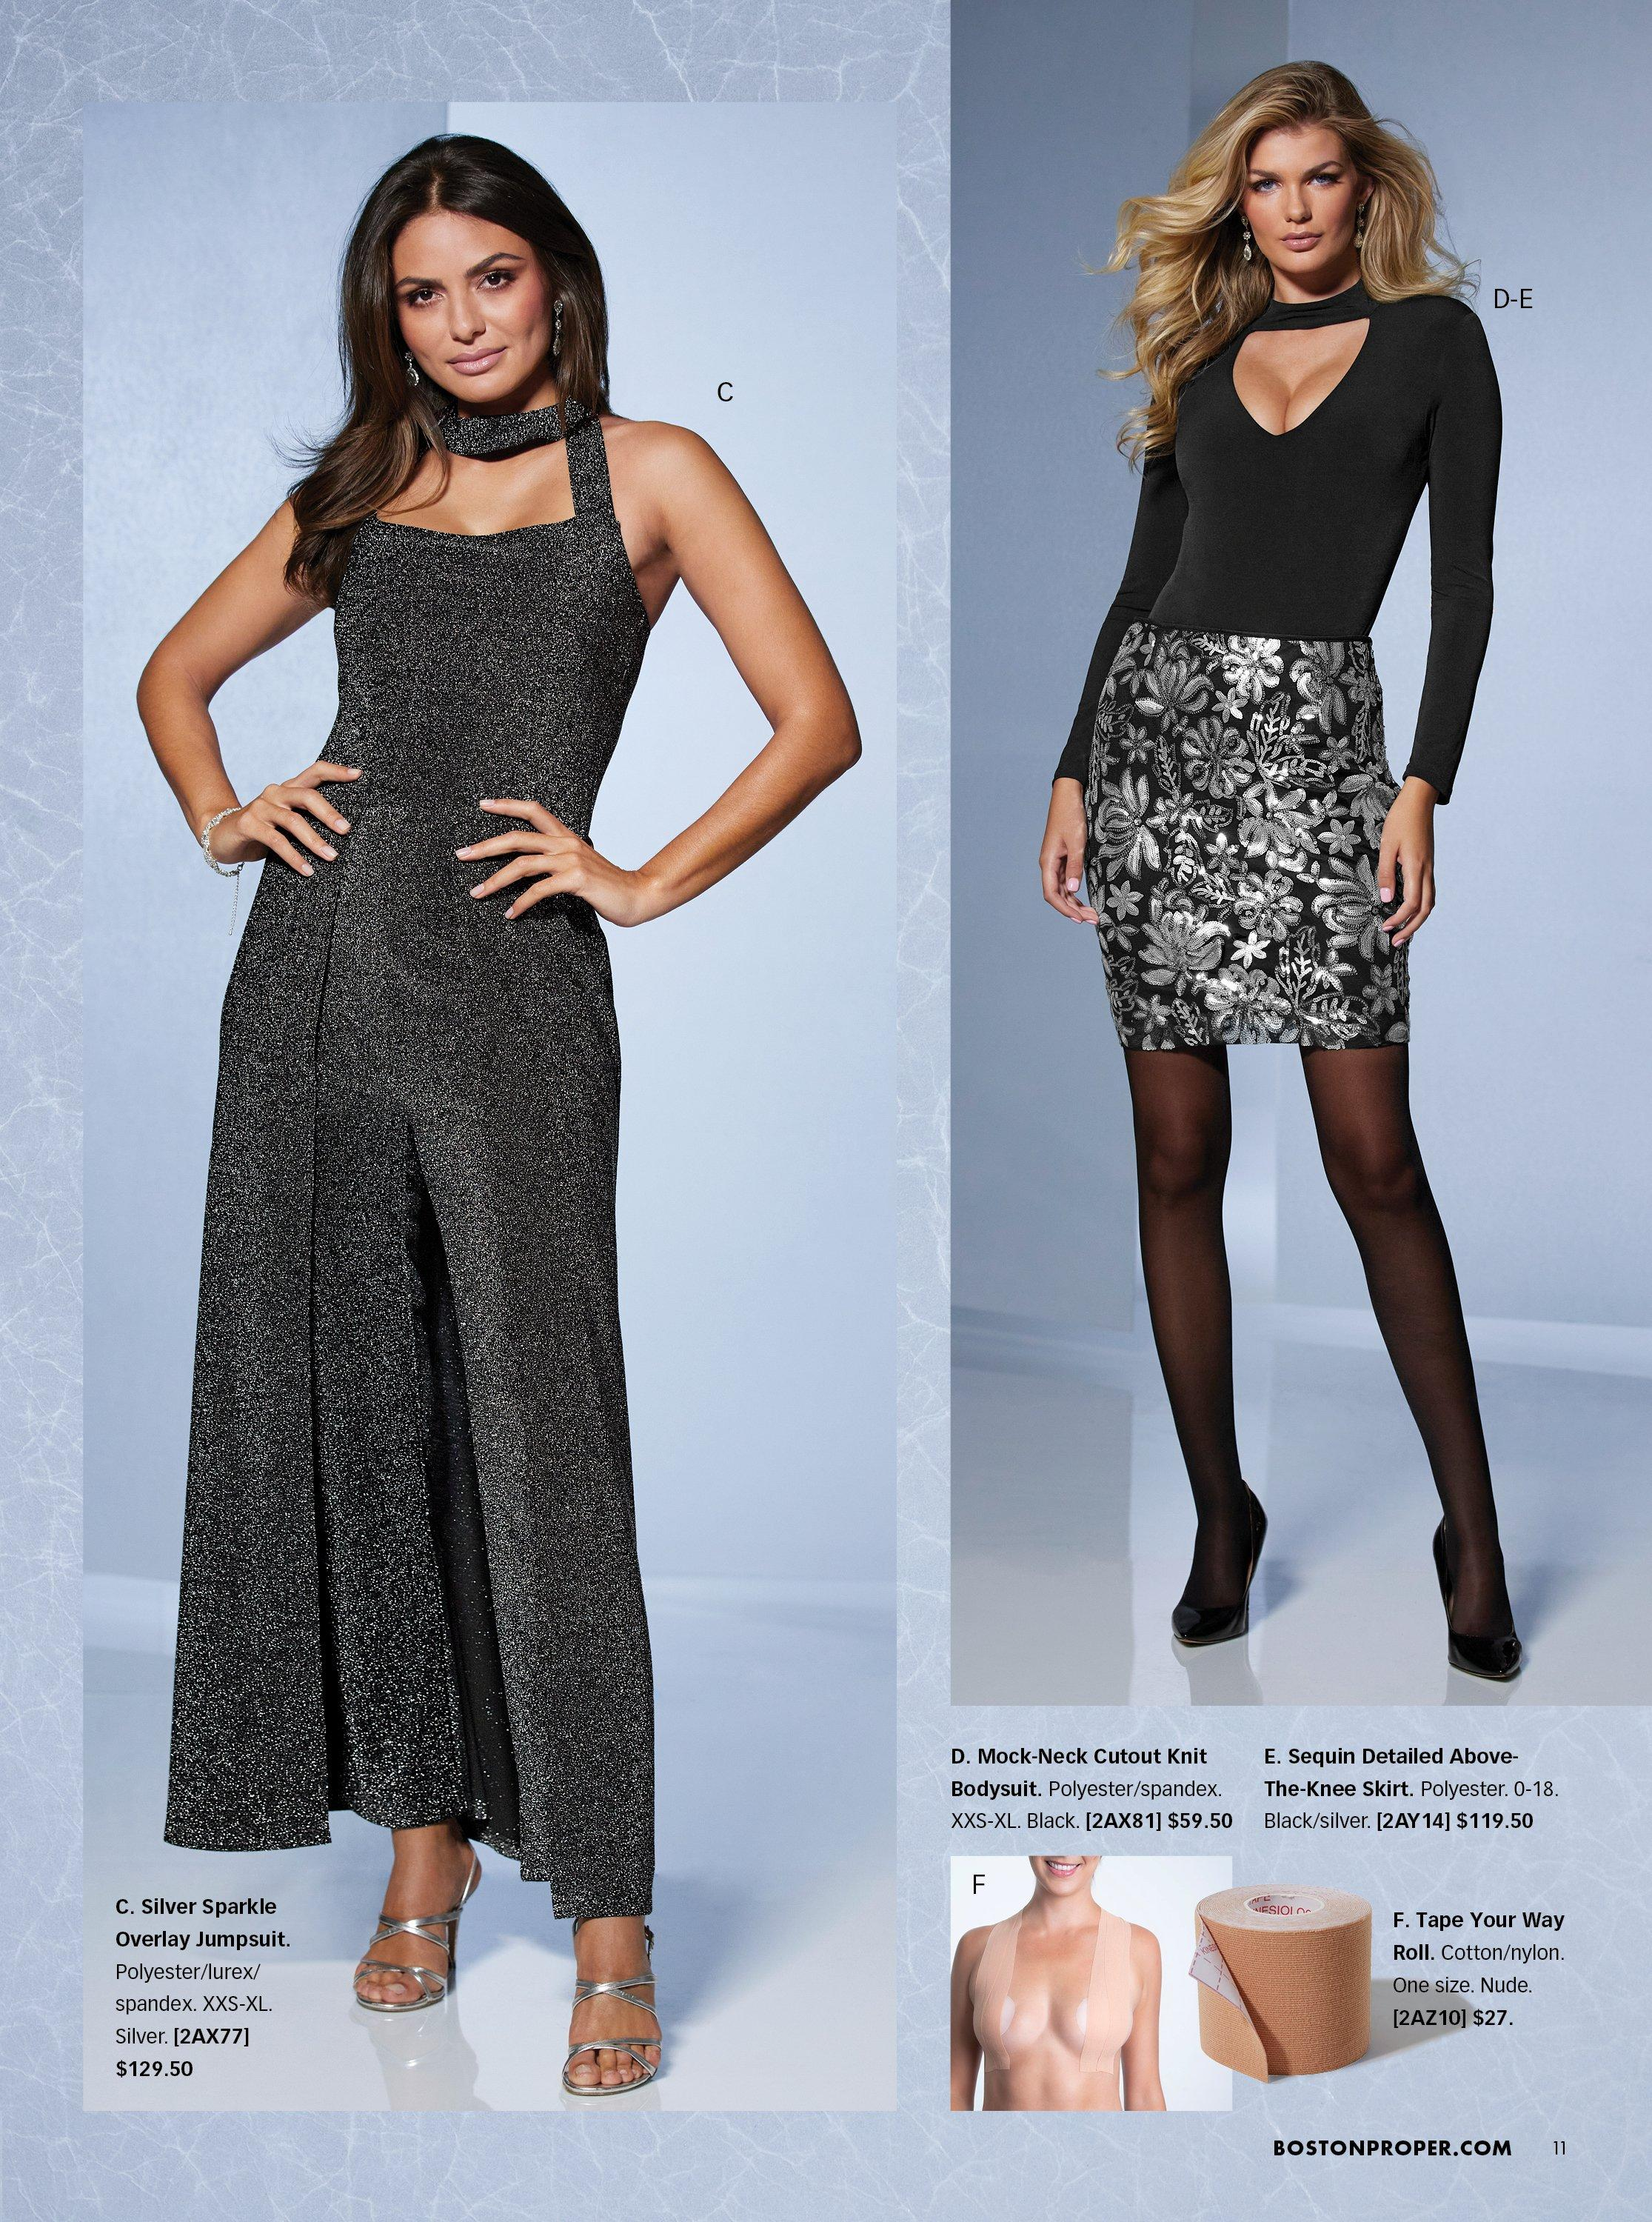 left model wearing a black shimmer choker-neck jumpsuit and silver strappy heels. right model wearing a black mock-neck long sleeve body suit, black skirt with silver sequin flowers, sheer tights, and black heeled mule shoes. bottom panel shows body tape for tricky necklines.